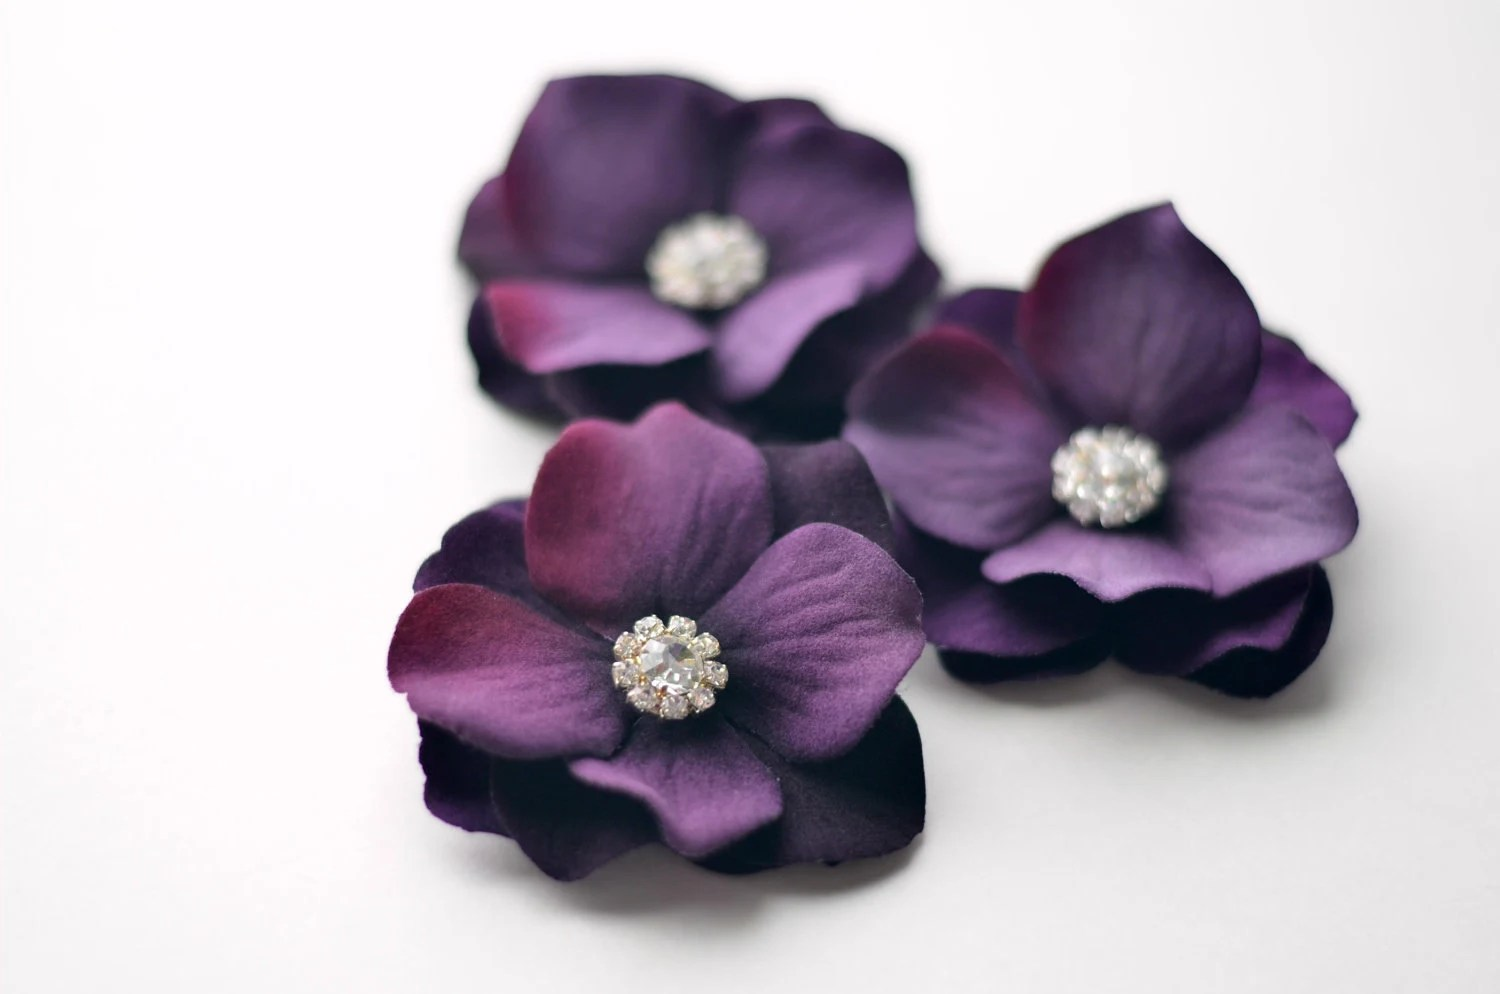 Bridesmaid Hair Clips - Wedding Hair Accessories, Set of 3 Hair Flowers, Eggplant Purple, Royal Purple, Crystal - EternalEden